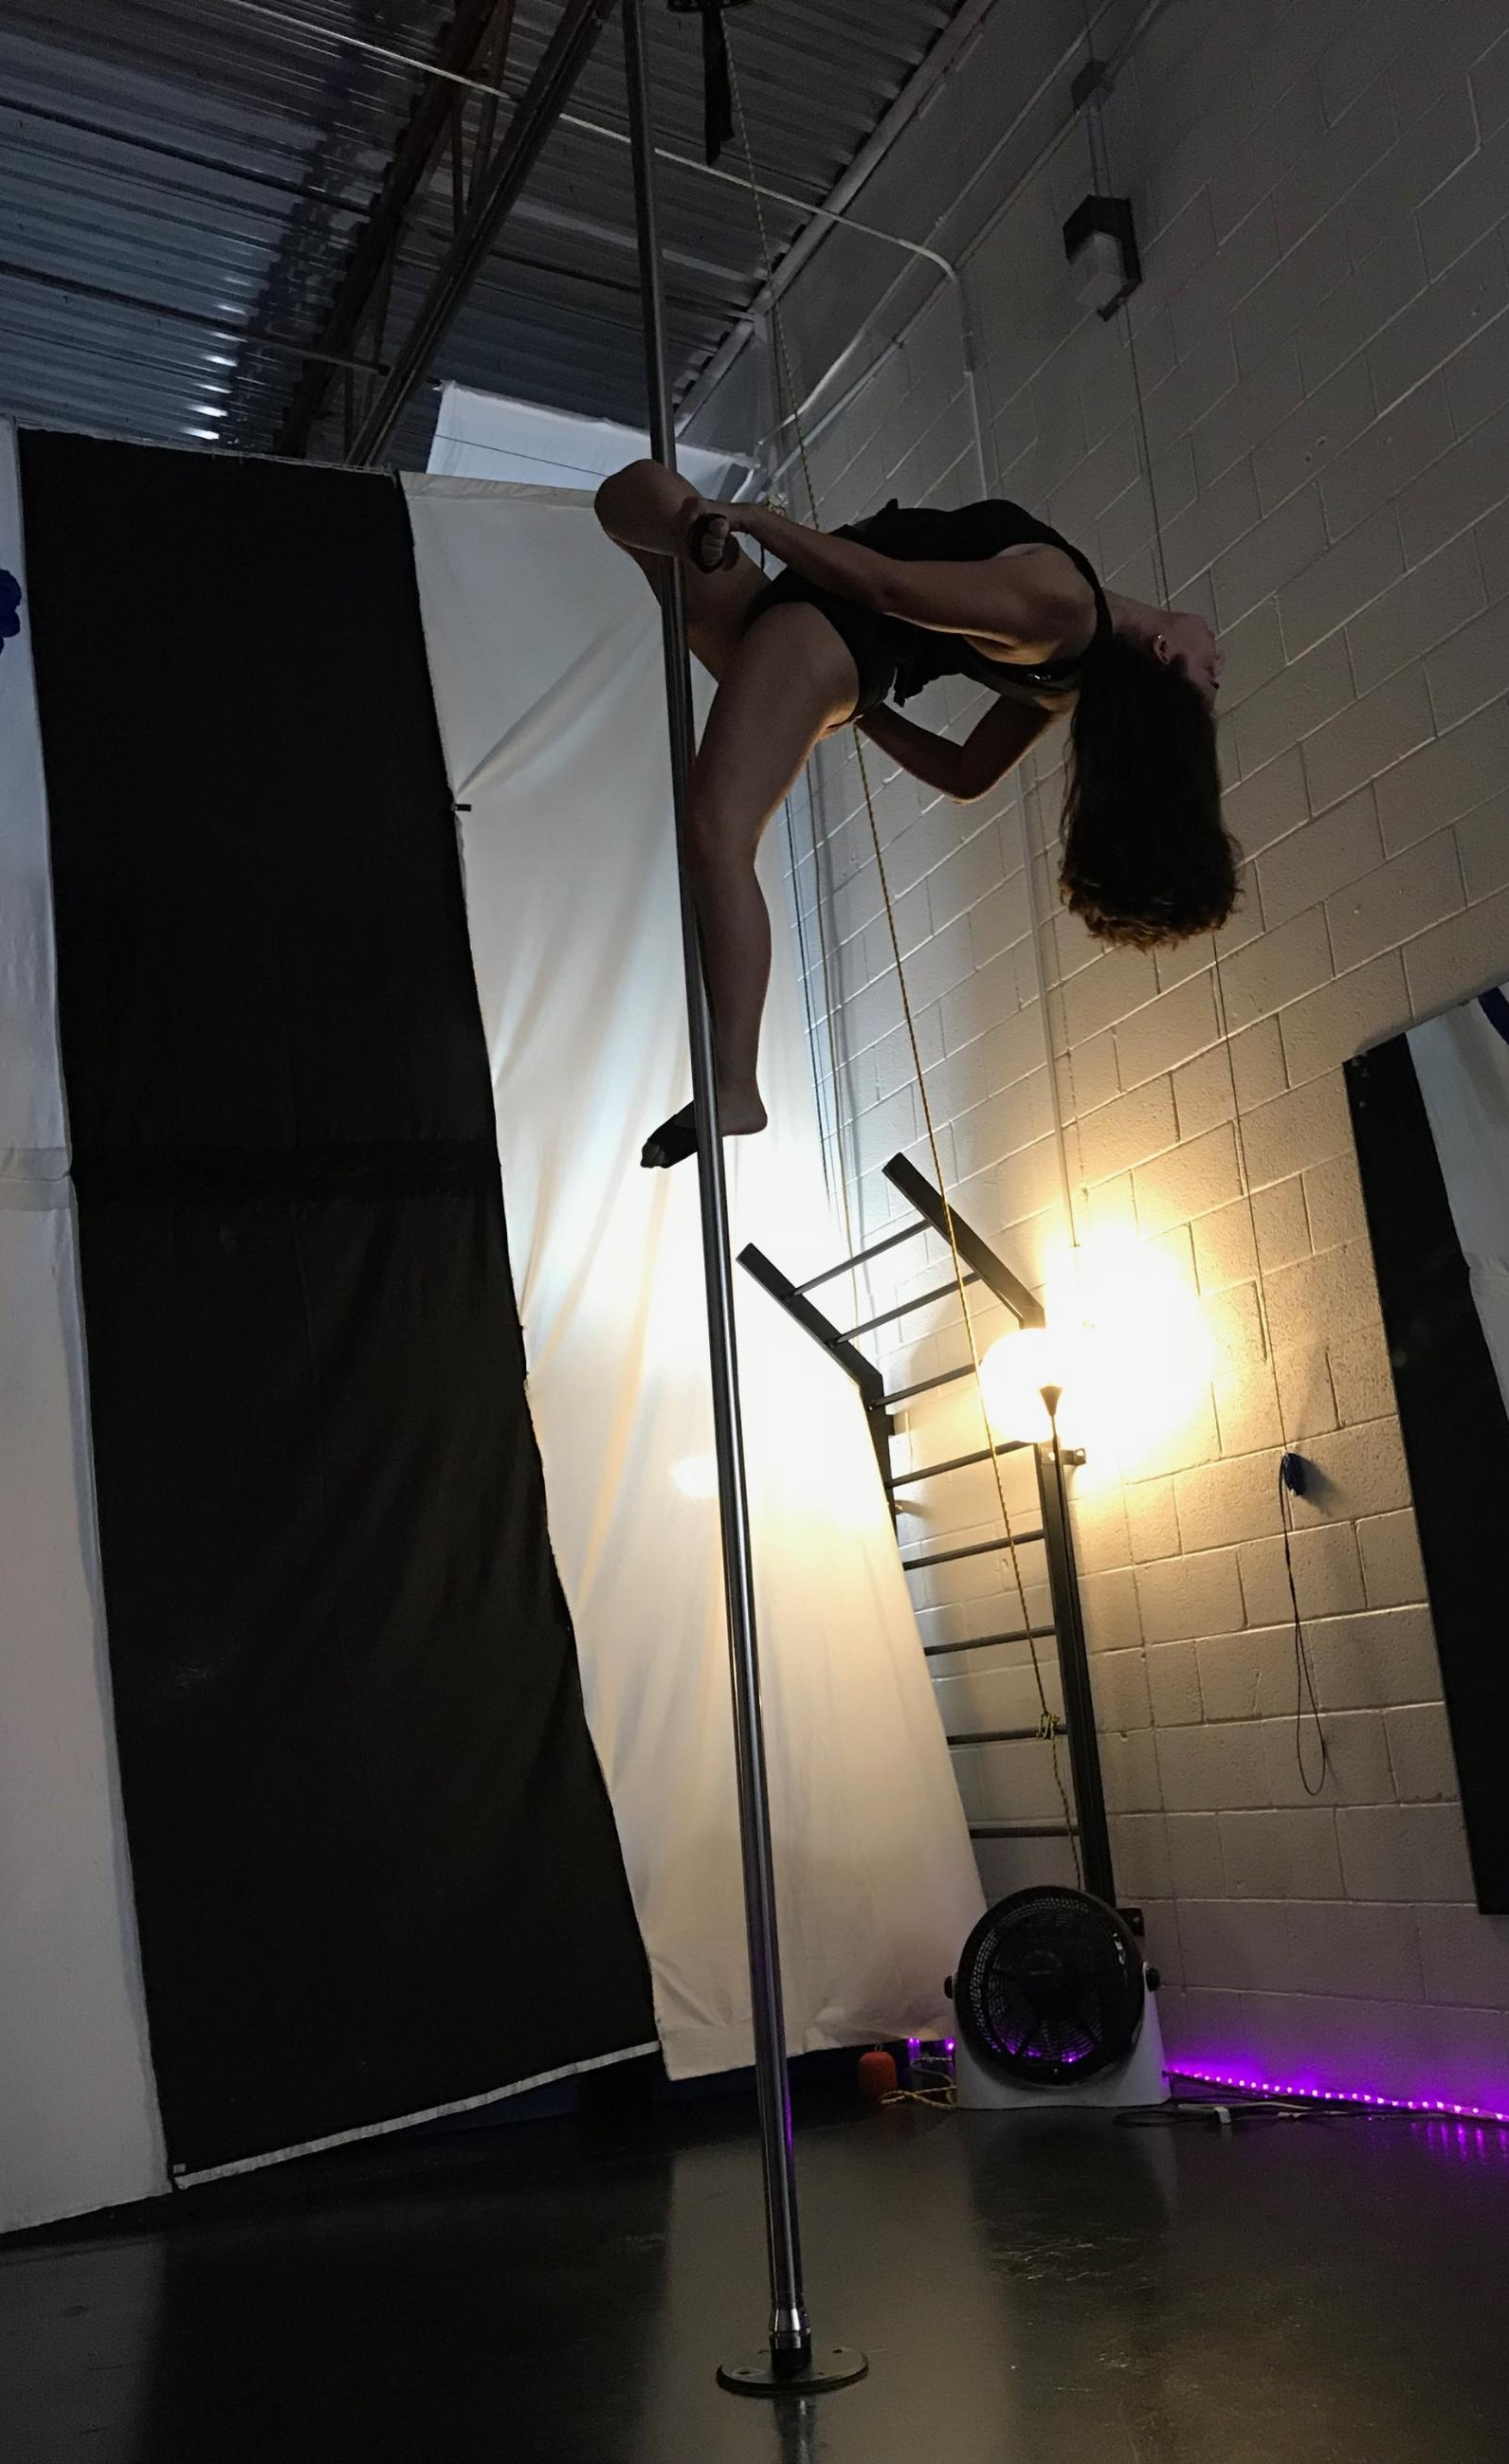 Pole - Monday &  Wednesday 6-7pm Pole 17-8pm Pole 28-9pm Pole 3/4Tuesday & Thursday 10-11am Pole 1Saturday:11-12pm Kids Pole Acrobatics